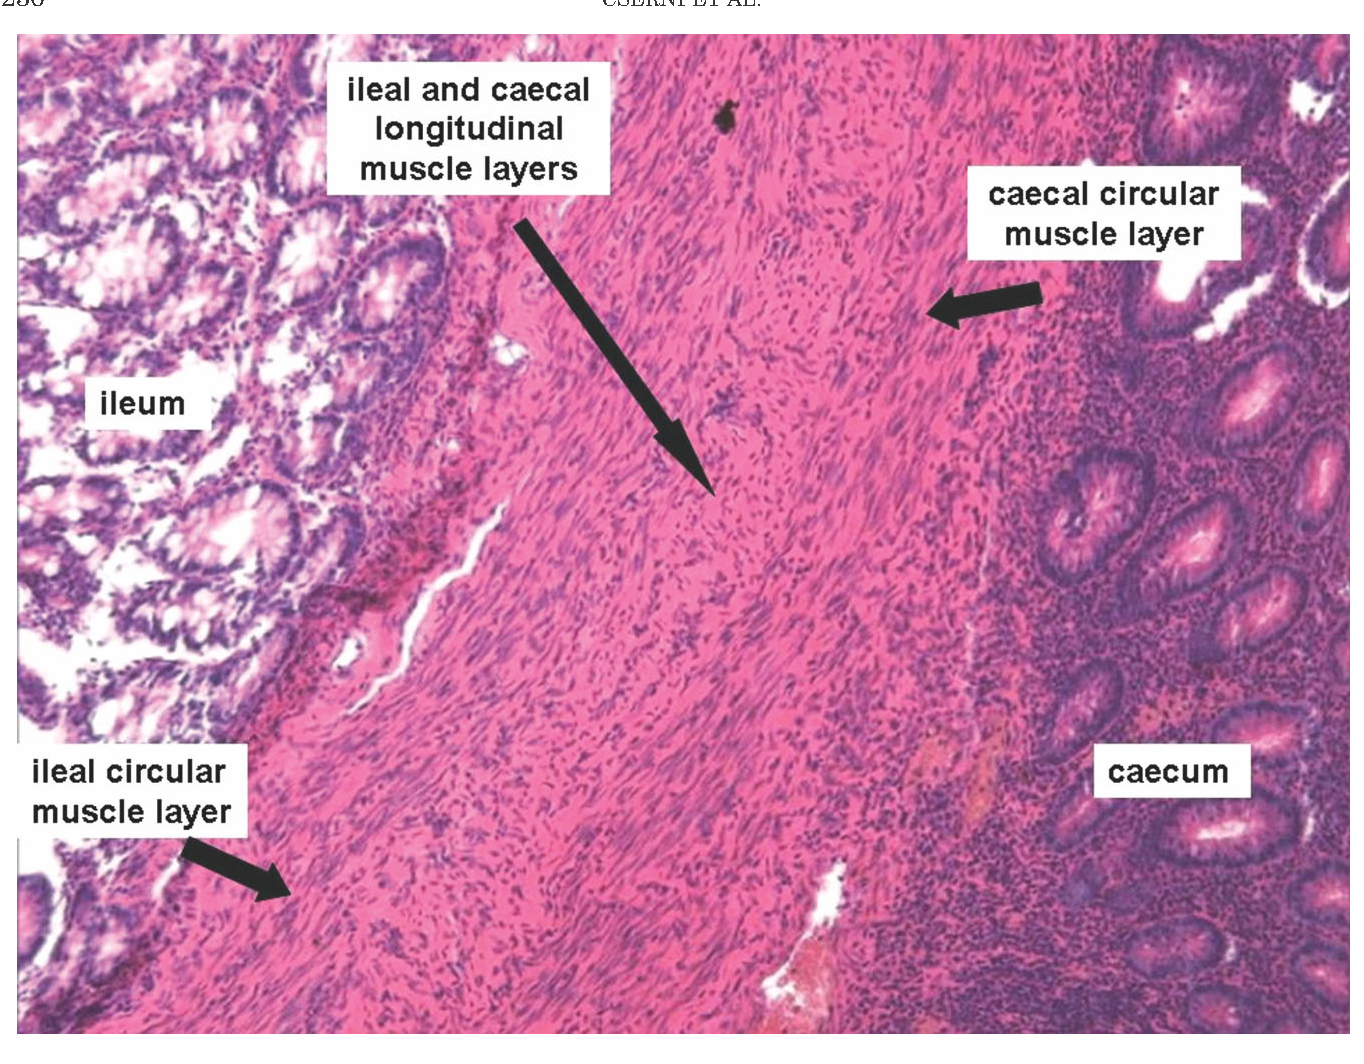 Figure 1 From New Insights Into The Neuromuscular Anatomy Of The